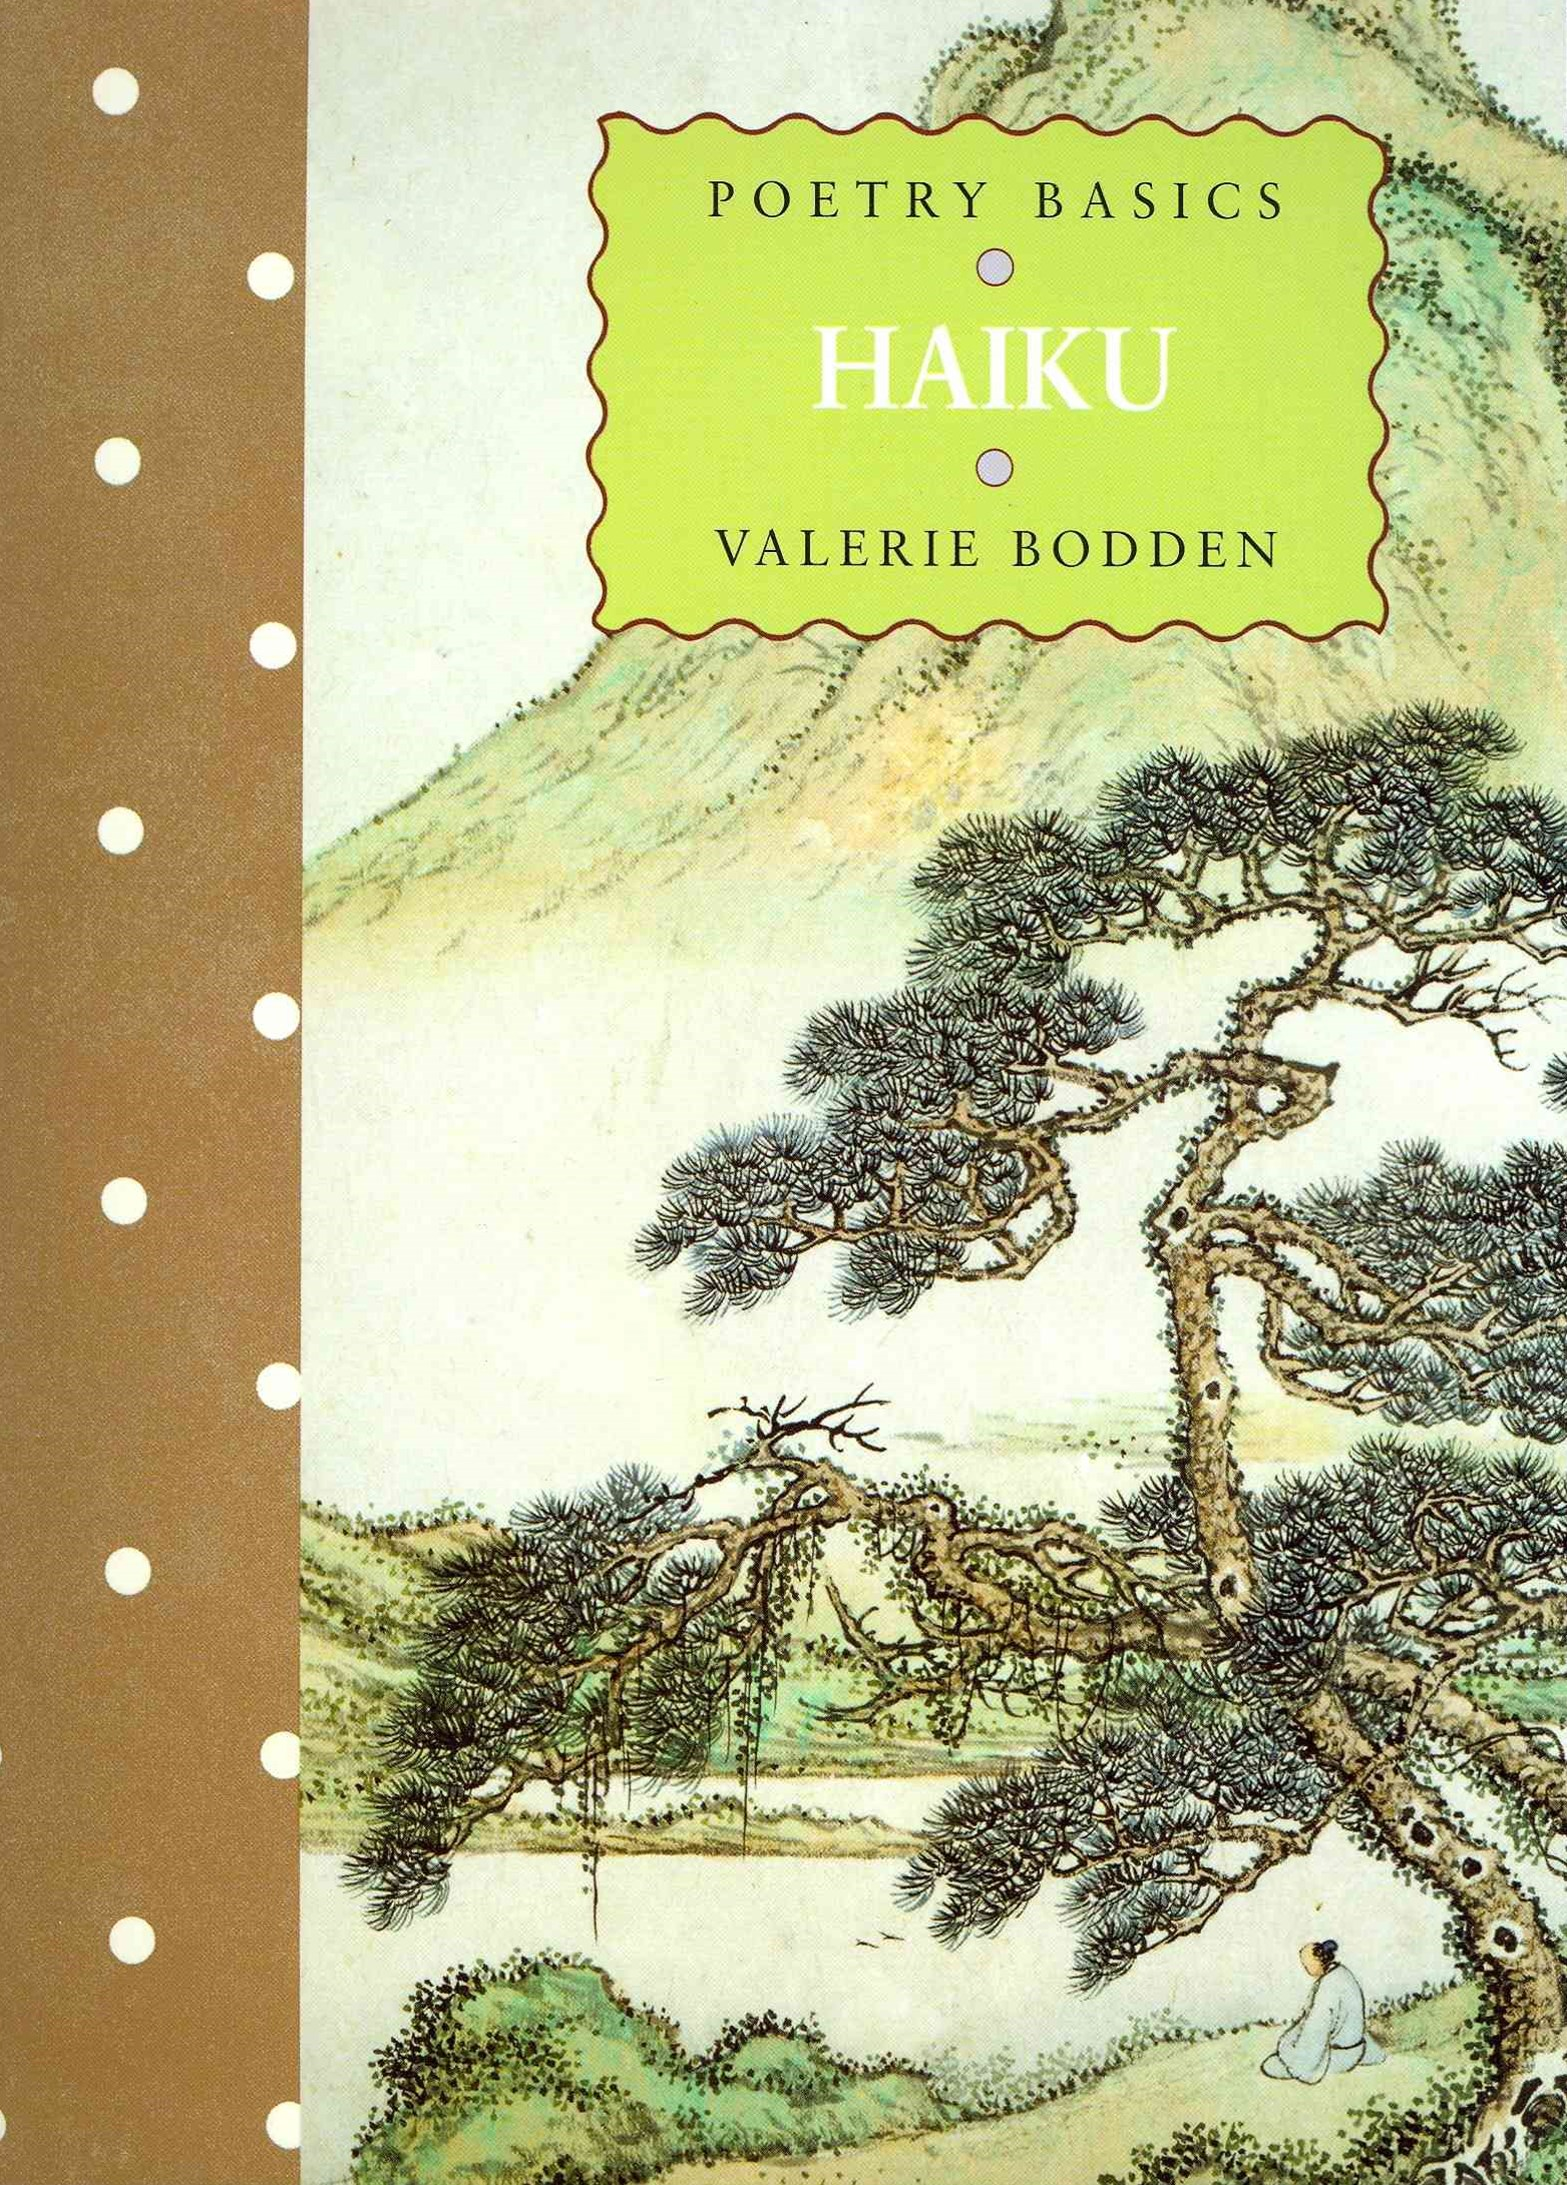 Poetry Basics: Haiku